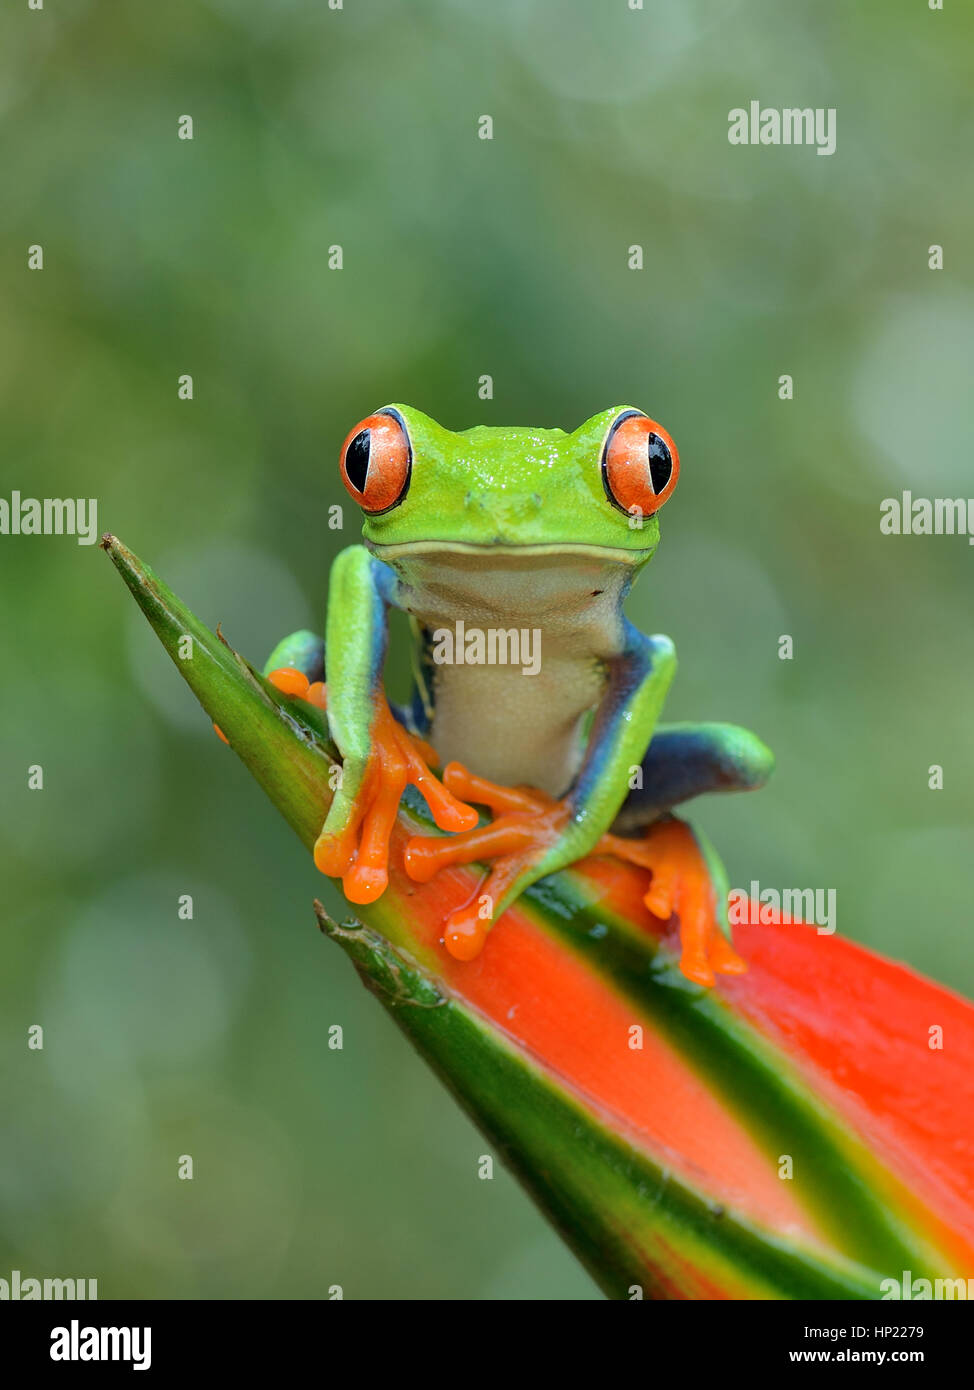 Red-eyed Tree Frog in Costa Rica rain forest - Stock Image